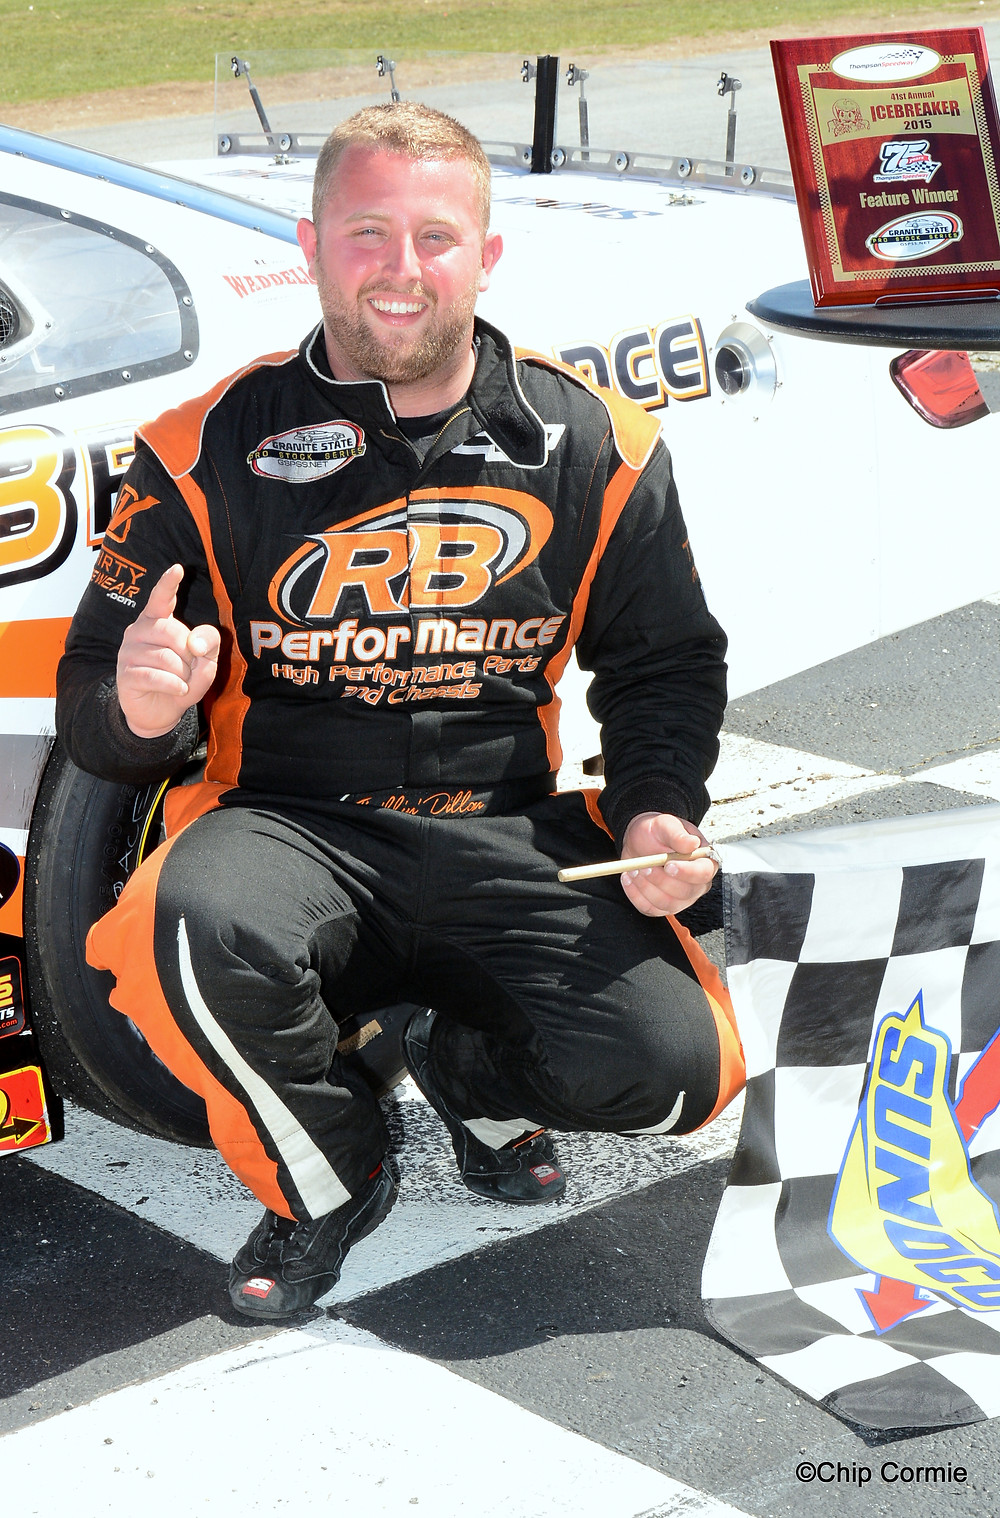 Ice Breaker Moltz Victory Lane (Chip).JPG